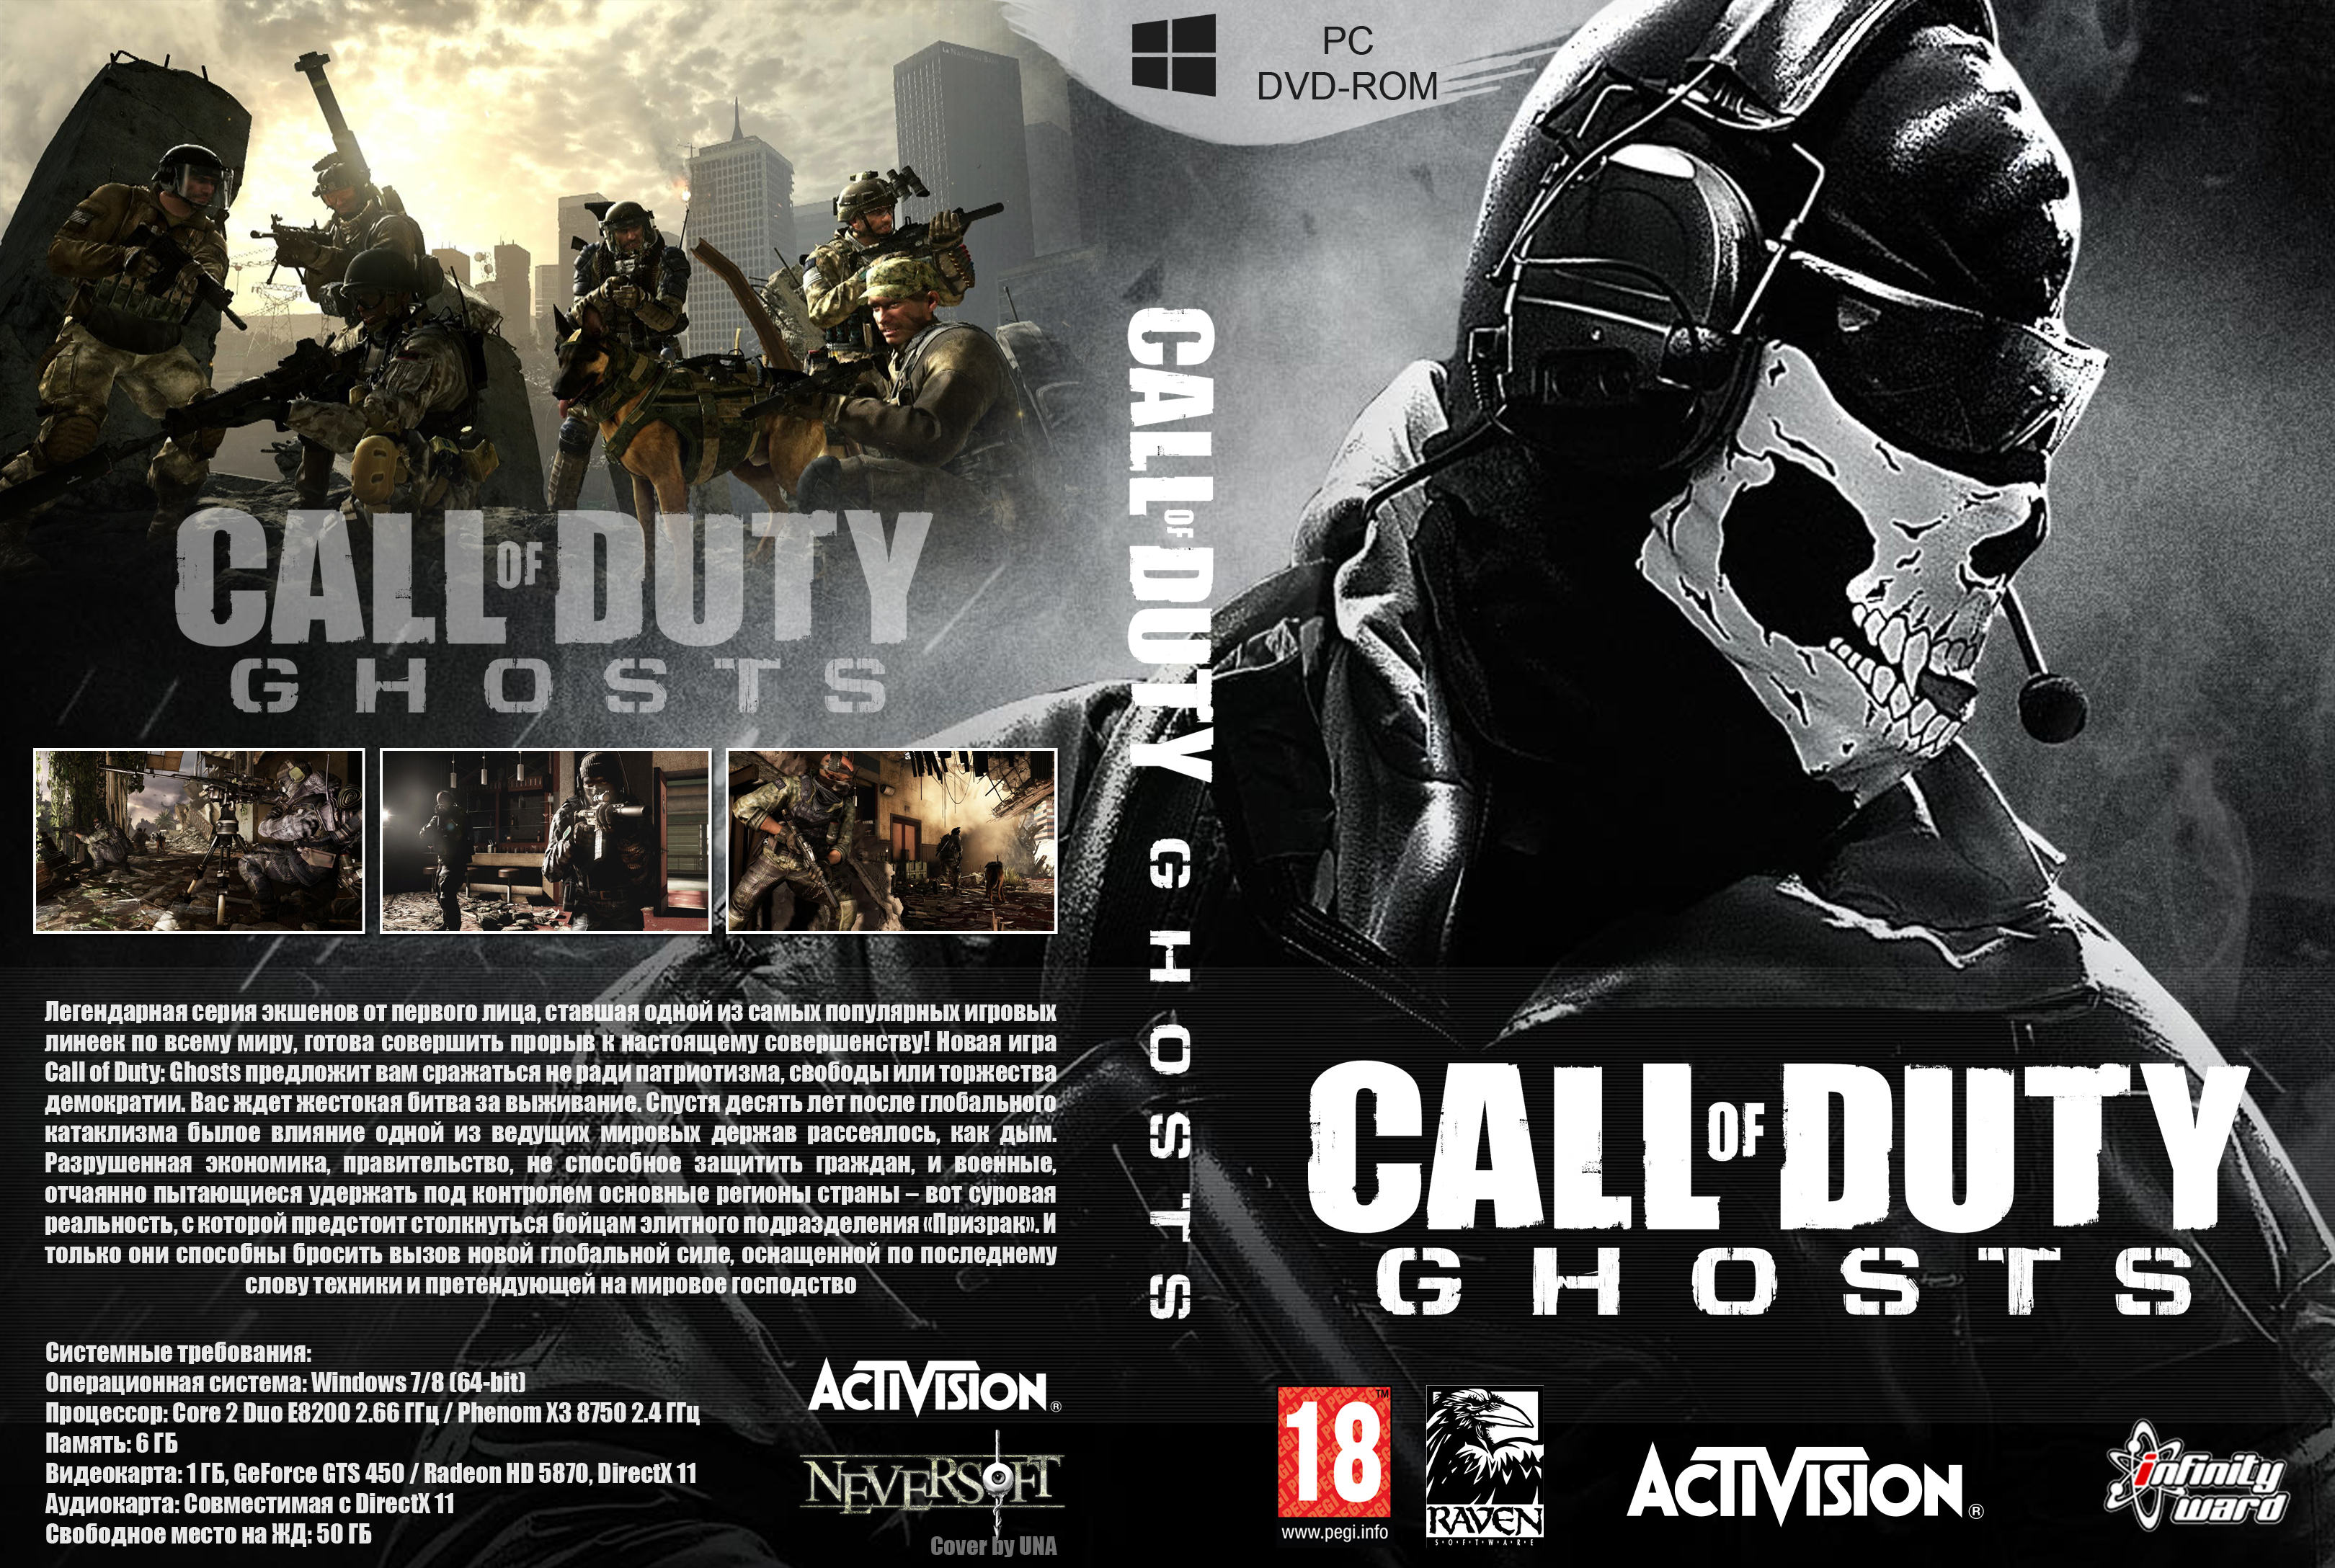 Viewing Full Size Call Of Duty Ghosts Box Cover